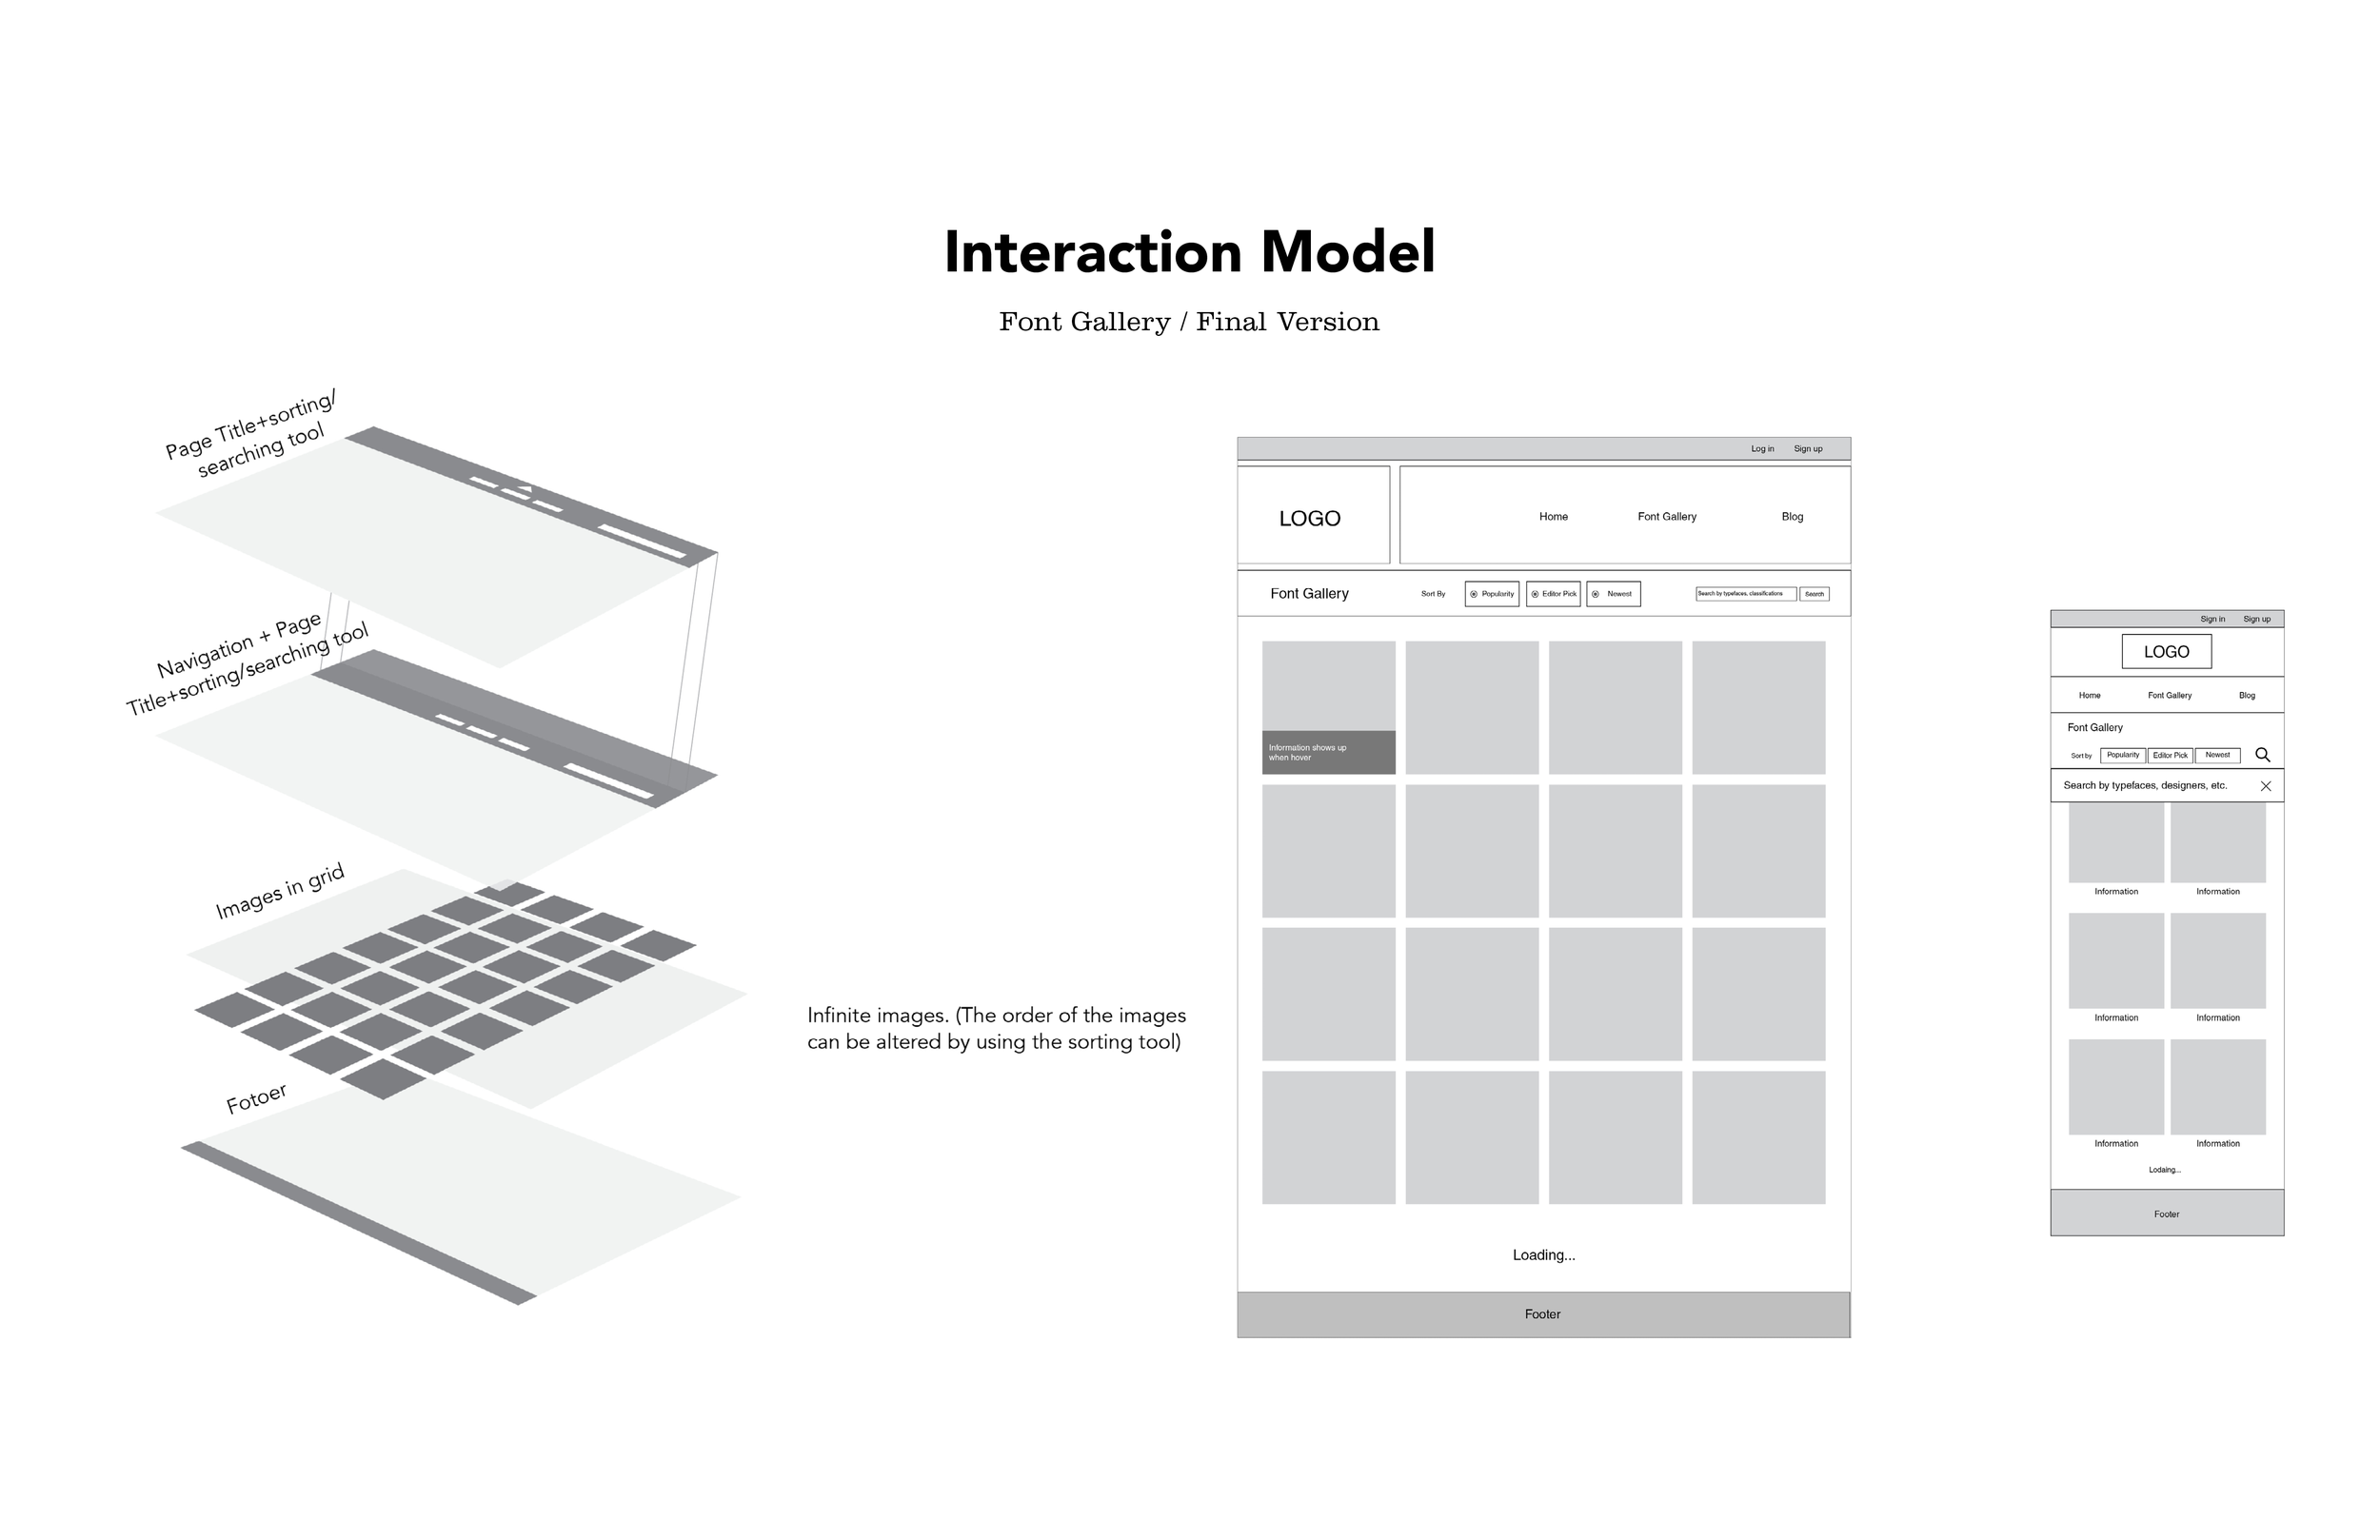 interaction model5.png